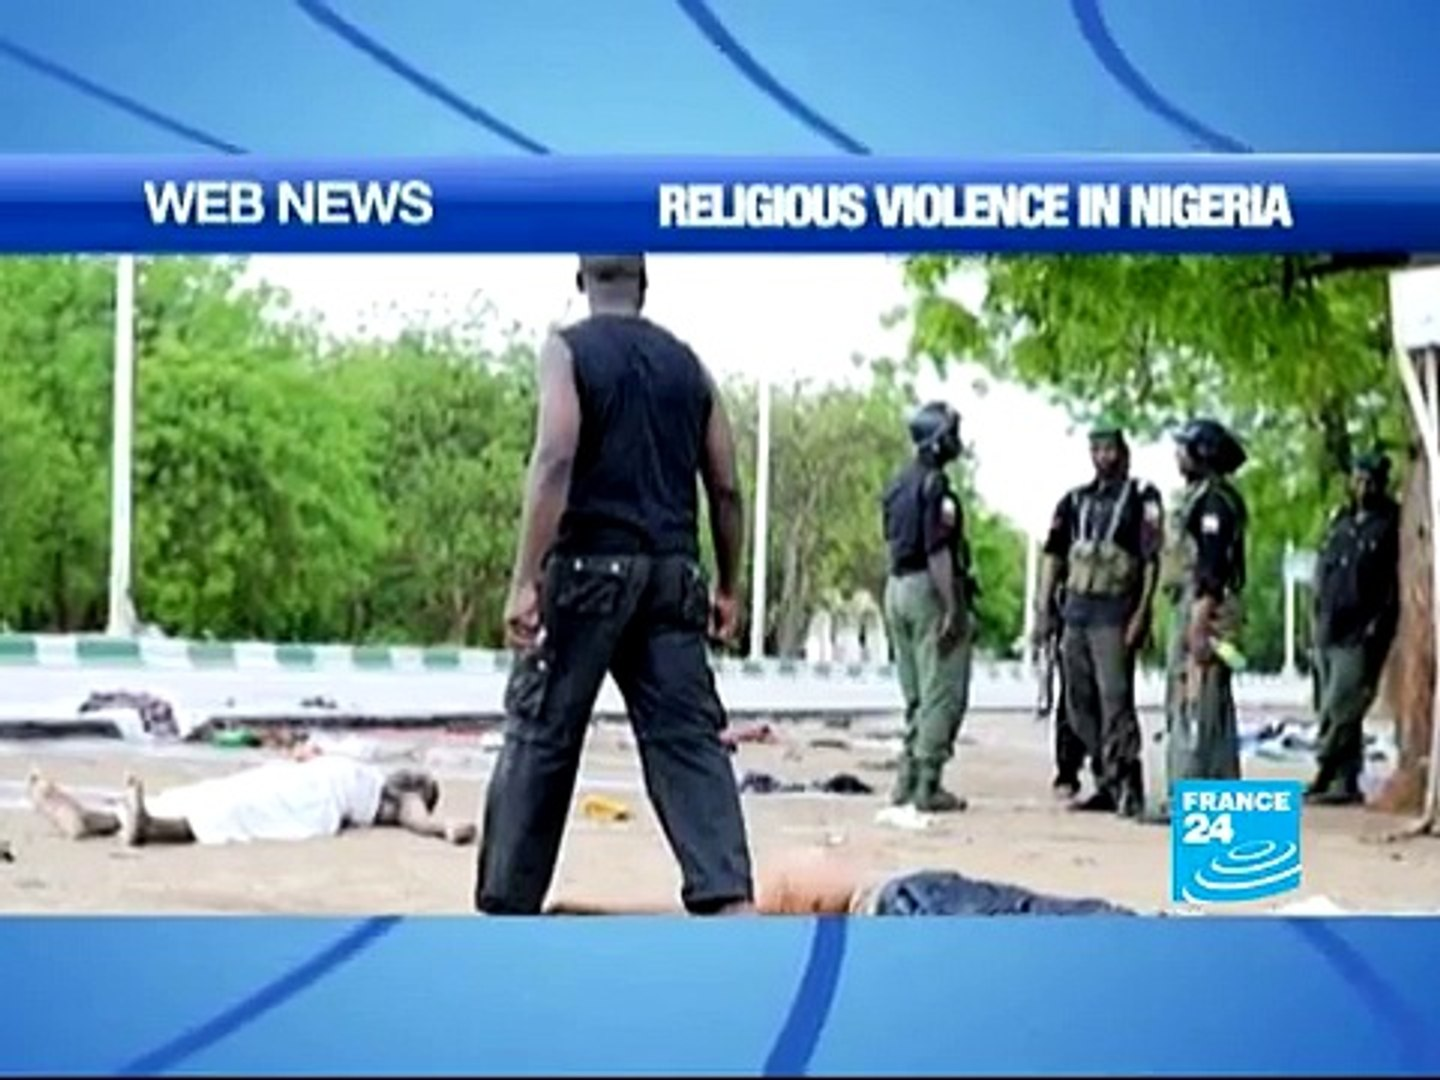 Religious violence flares up in Nigeria